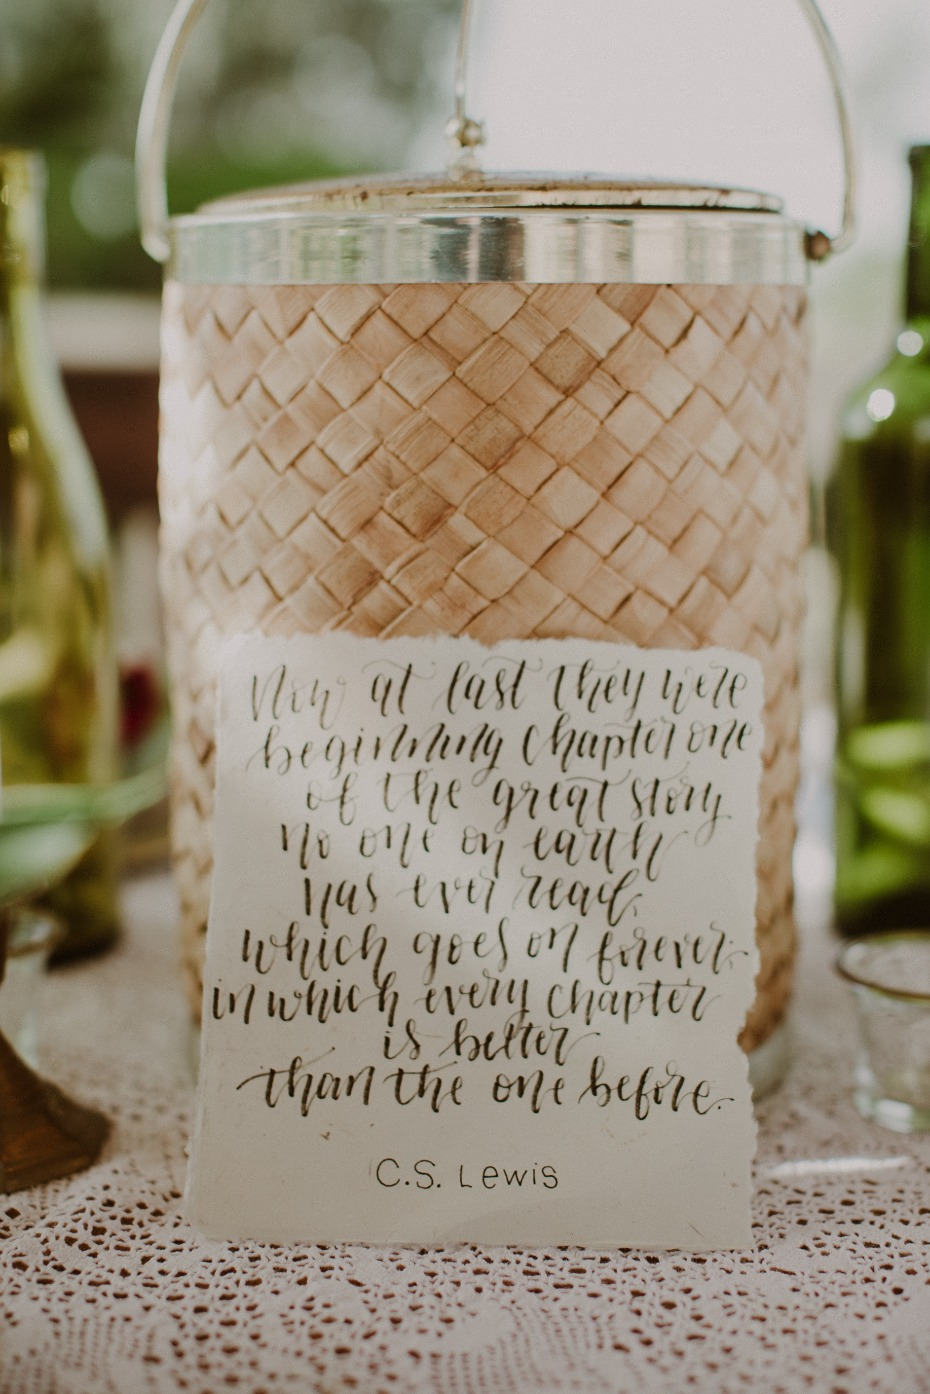 C.S. Lewis quote for your wedding day